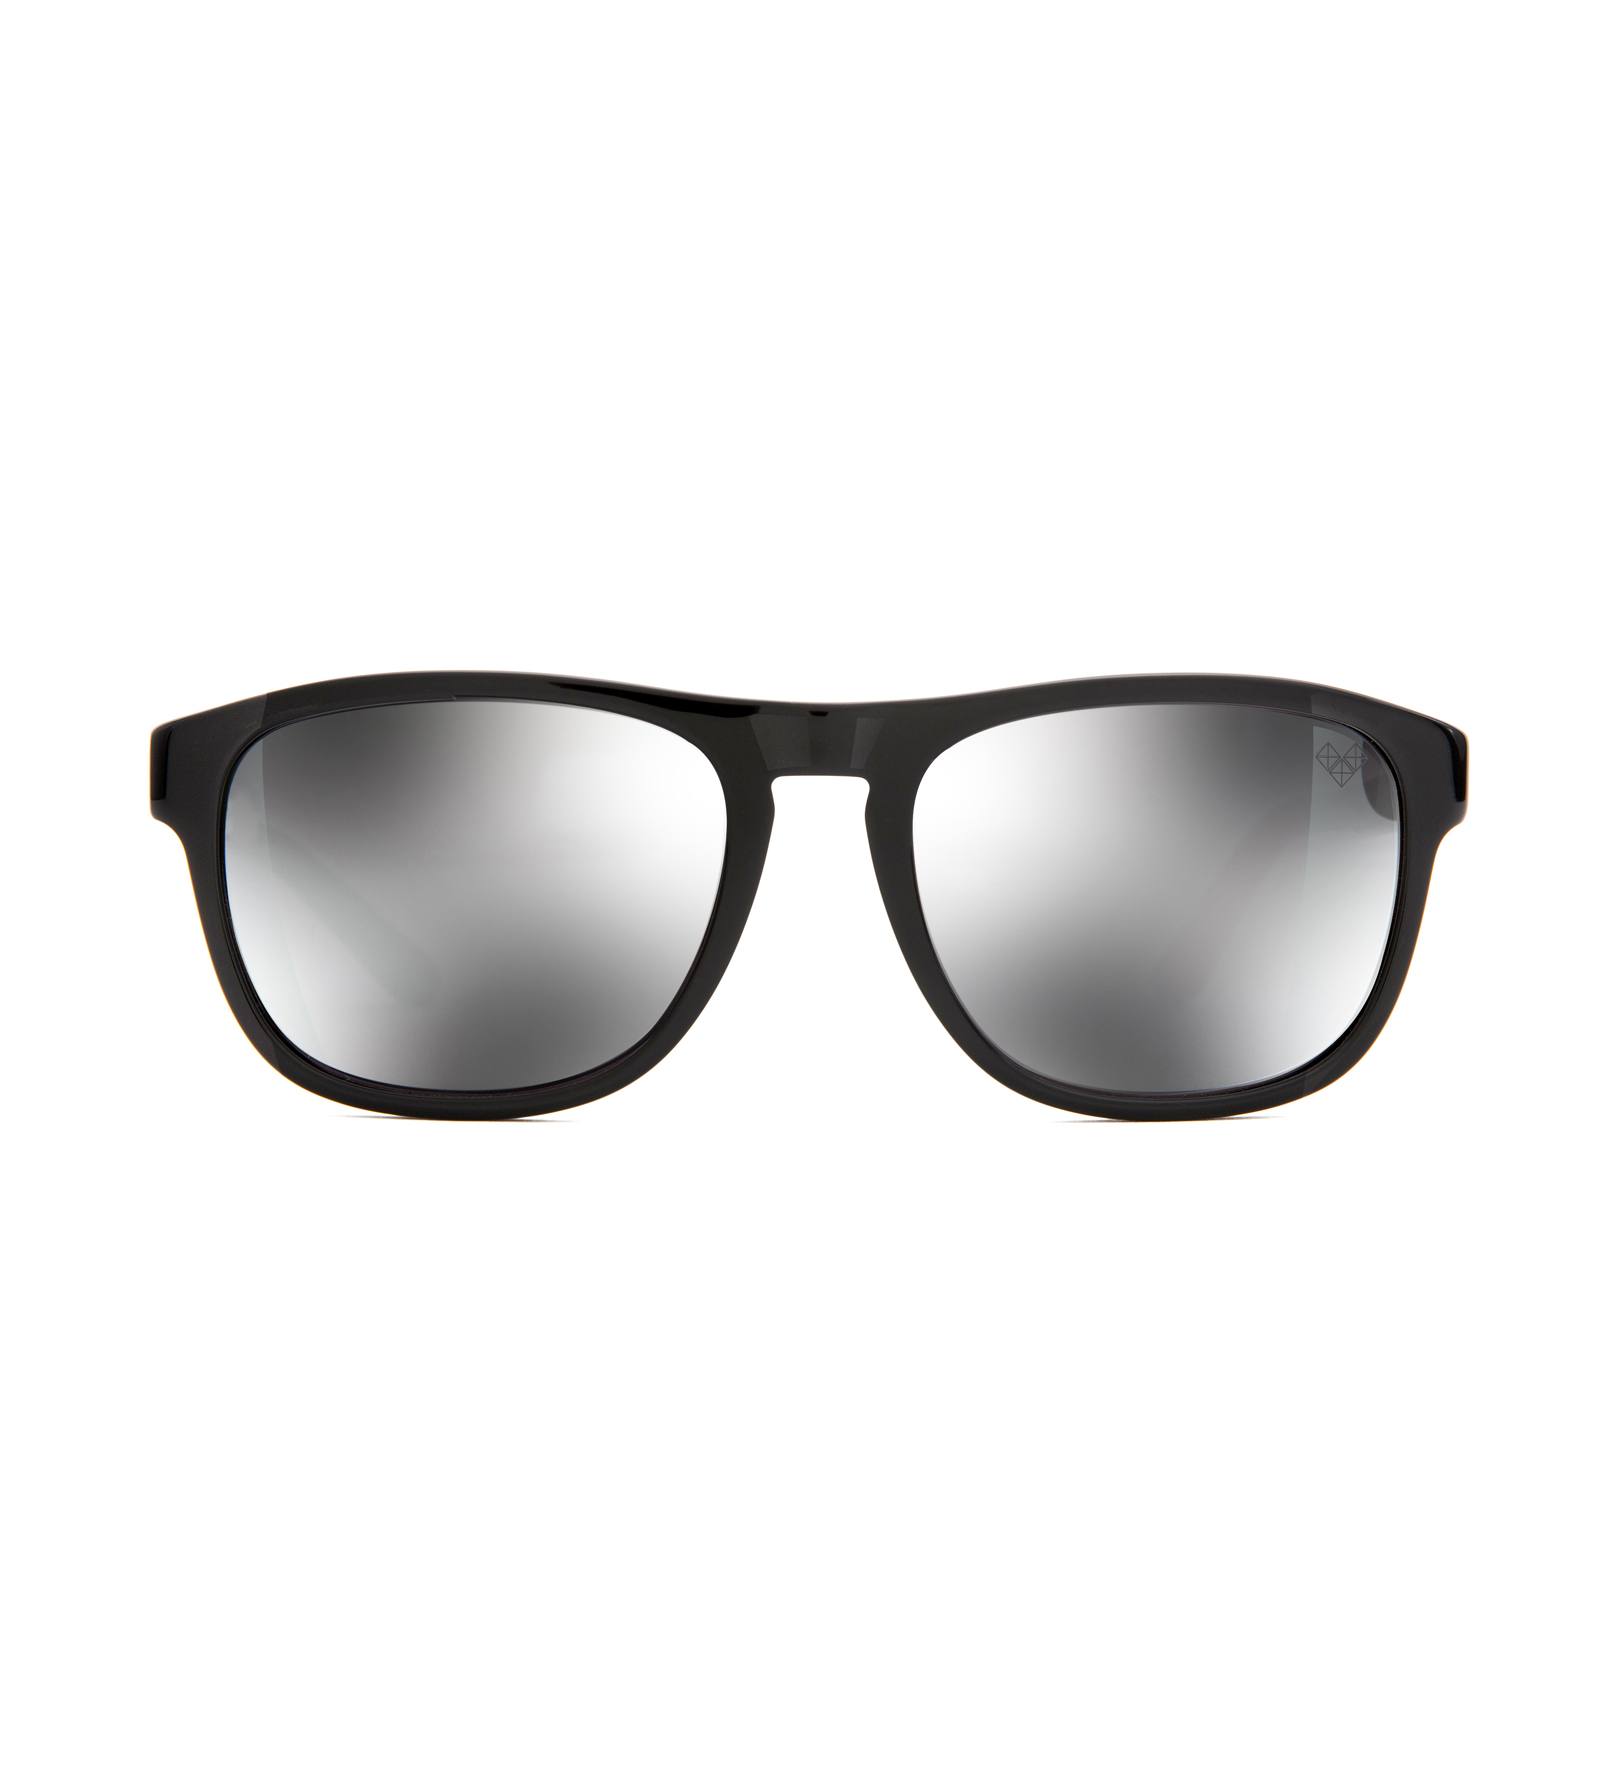 MAYDAY-Md5S with Silver Mirror Coating Lenses